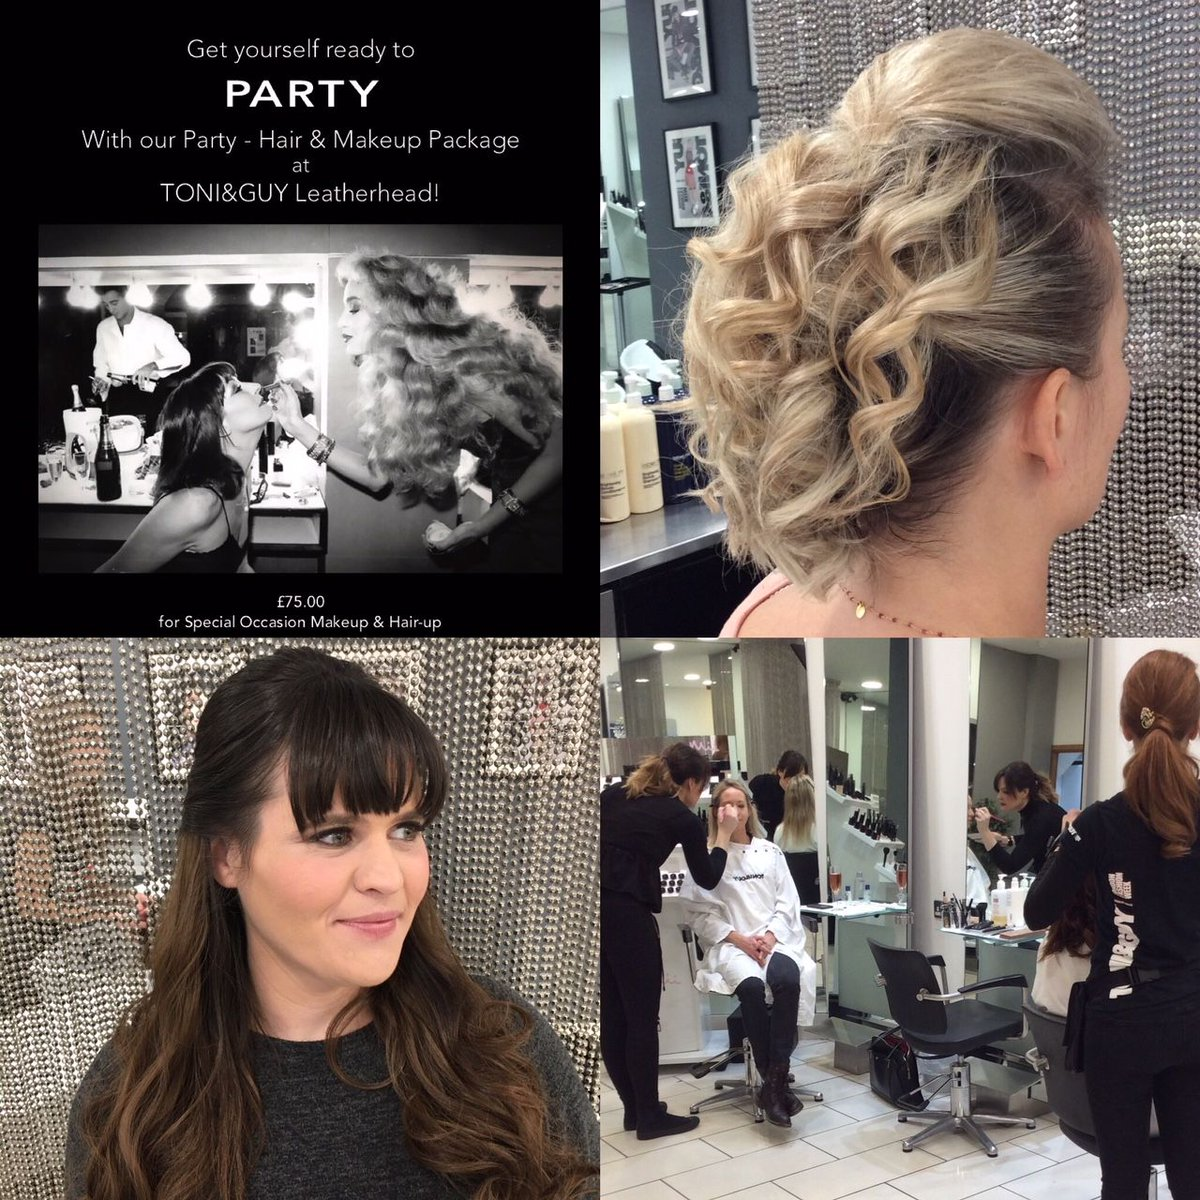 Toniguy leatherhead on twitter were loving our hair makeup toniguy leatherhead on twitter were loving our hair makeup packages book yours today tgleatherhead get yourself ready to party solutioingenieria Gallery